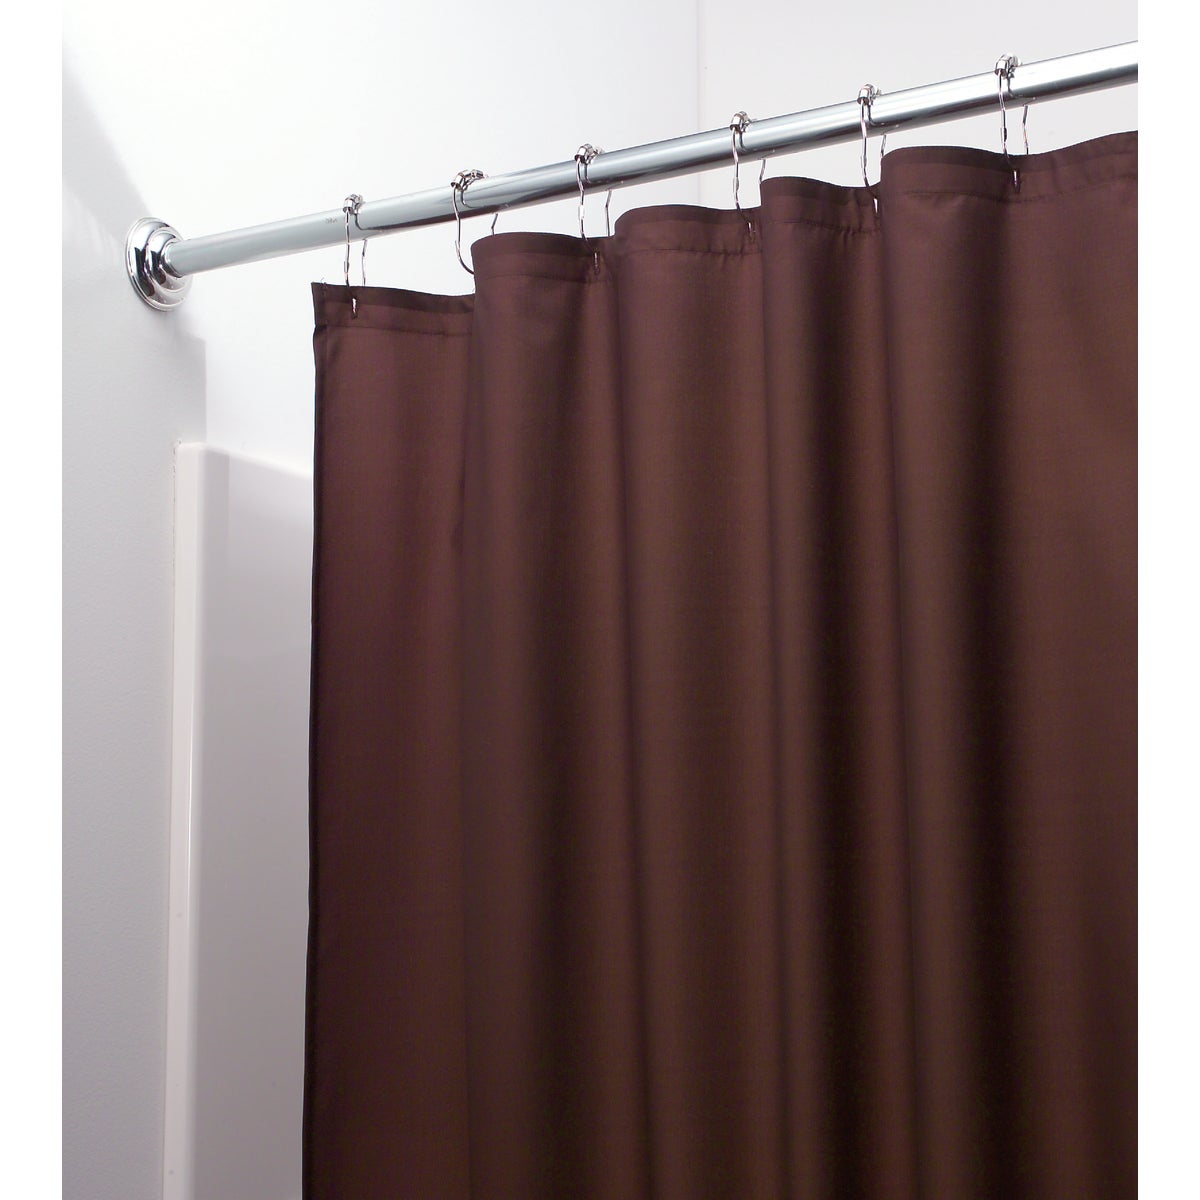 CHOC POLY SHOWER CURTAIN